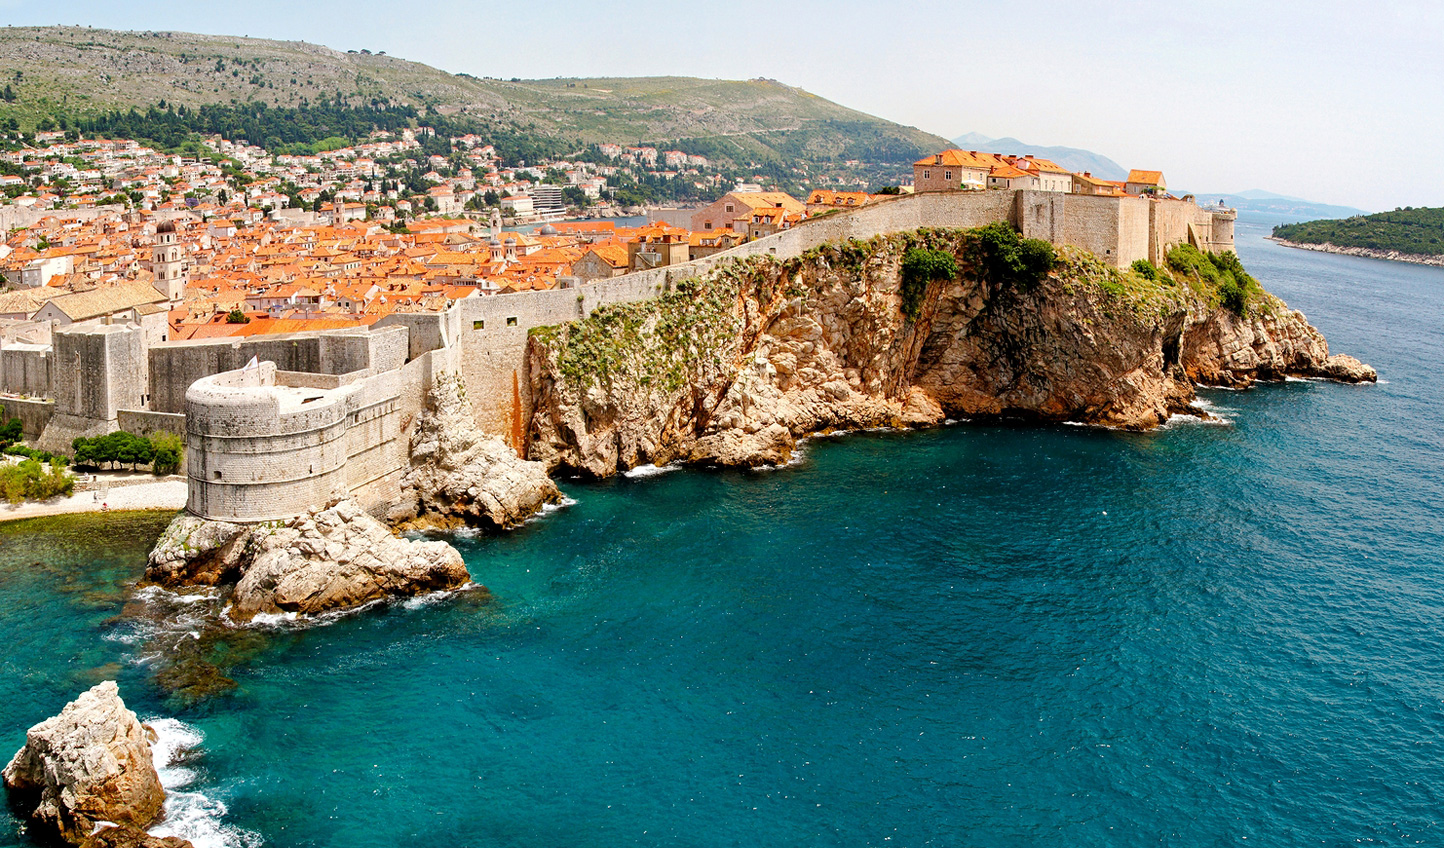 Wander the iconic city walls of Dubrovnik